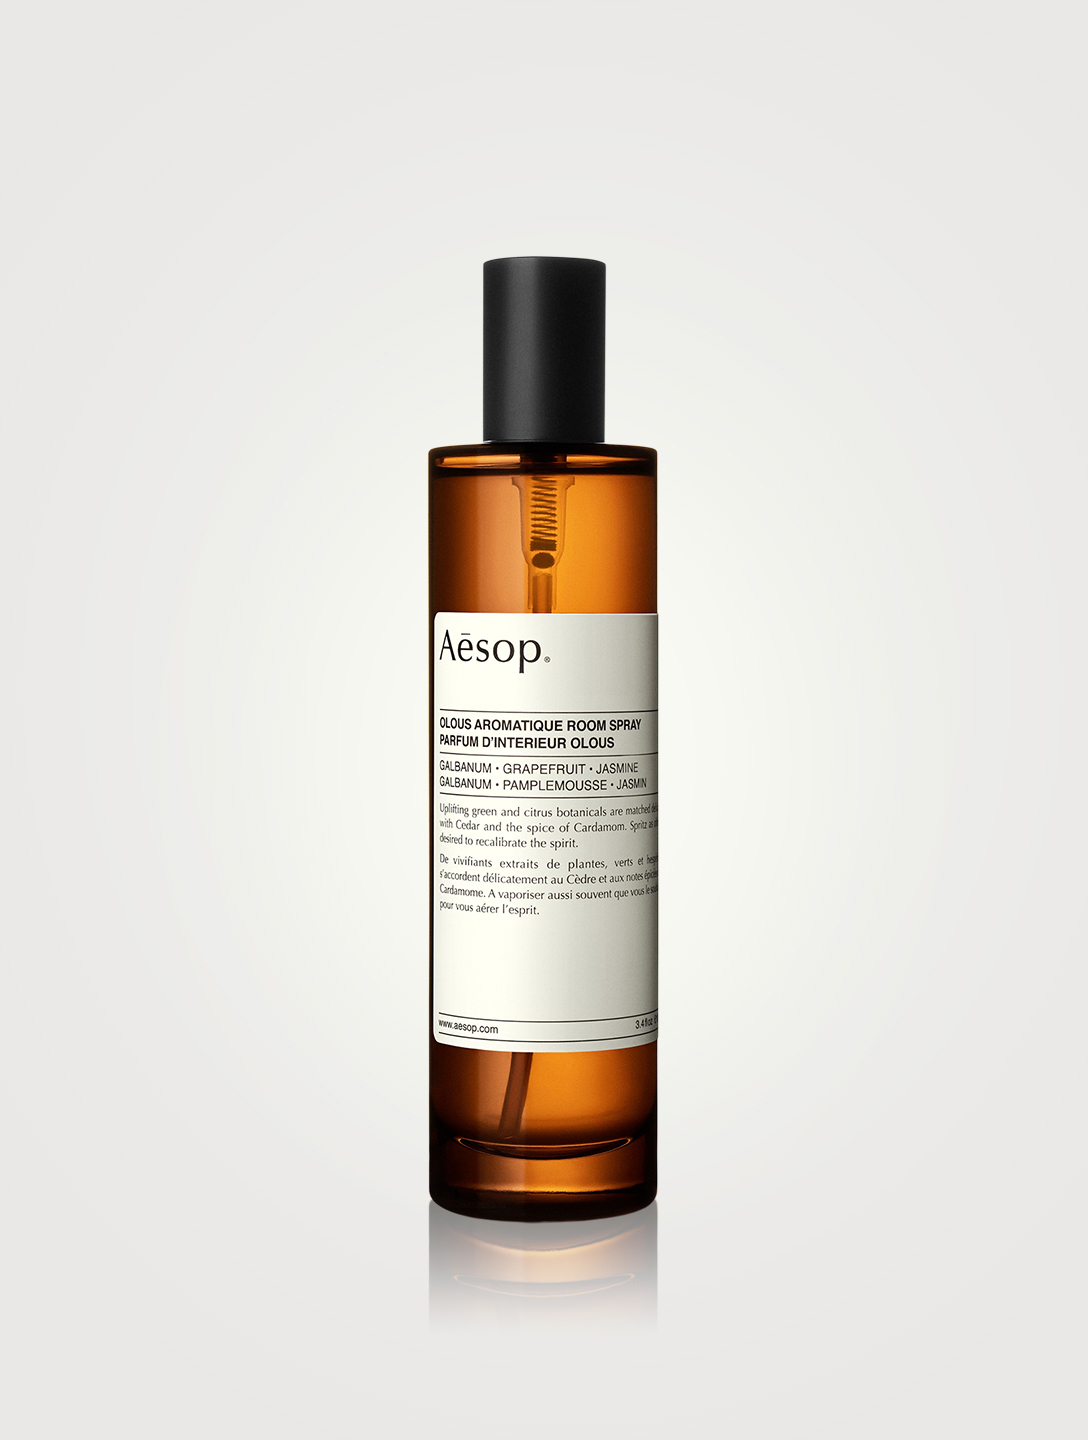 AESOP Olous Aromatique Room Spray Beauty